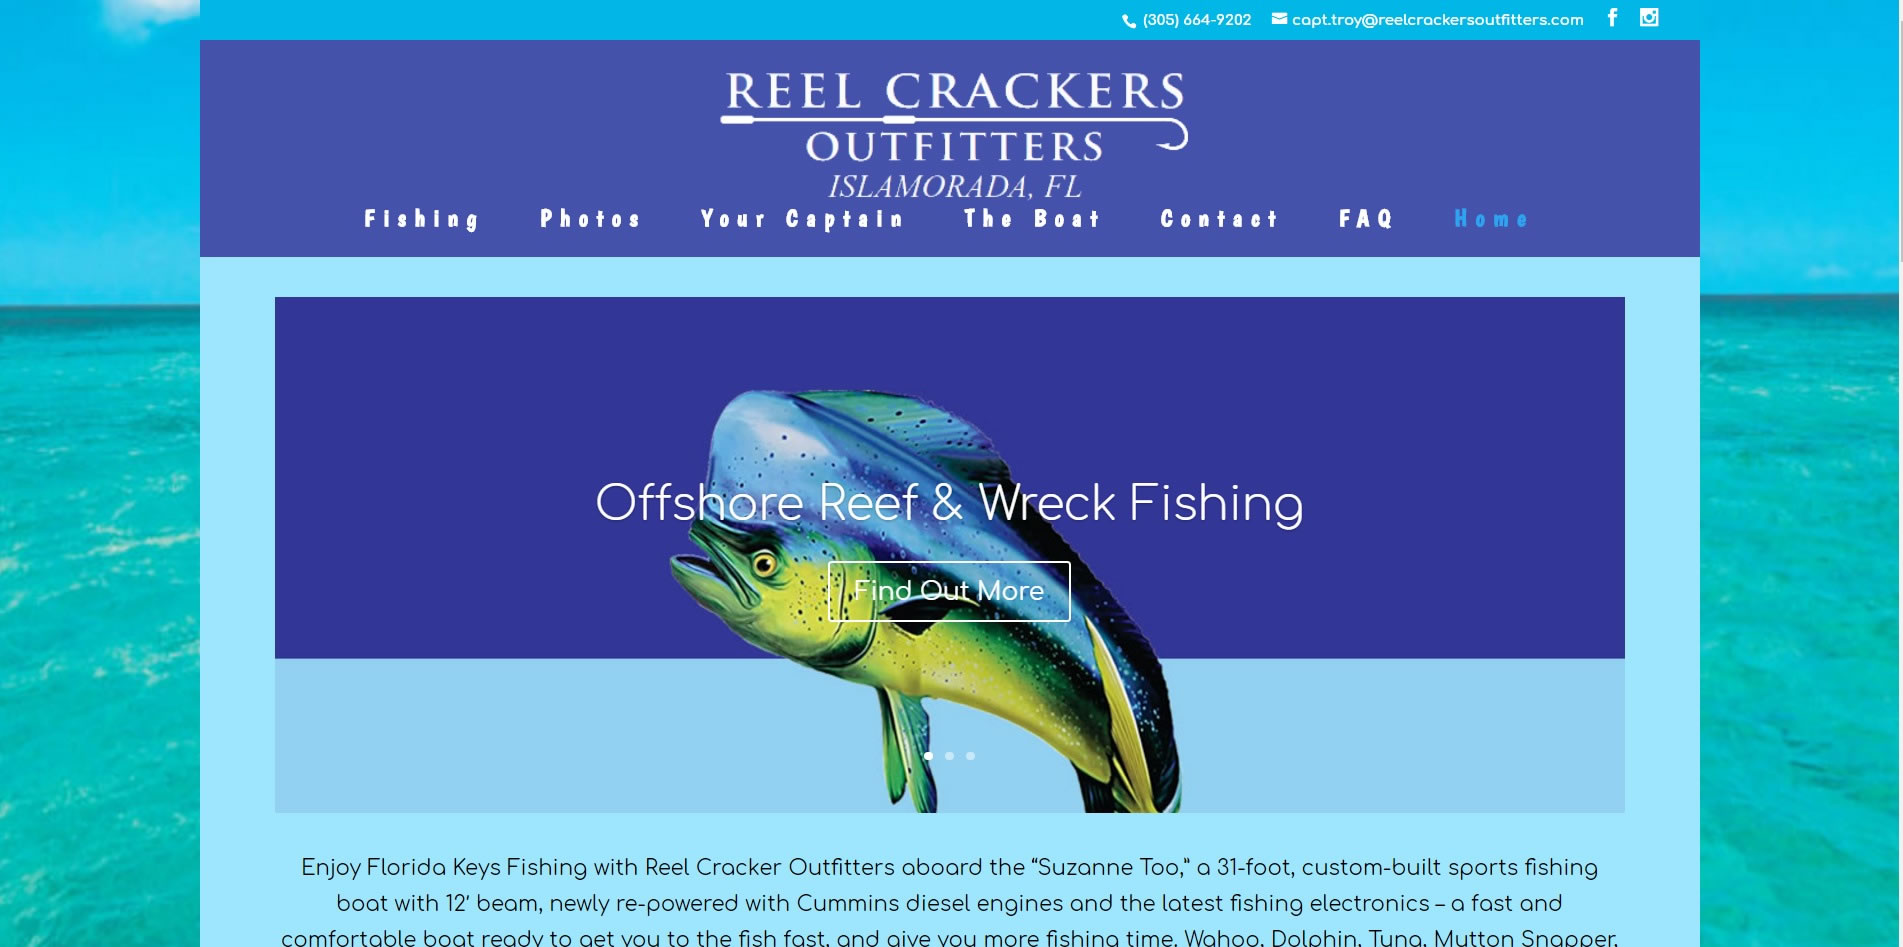 Islamorada fishing in the Florida Keys with Reel Crackers